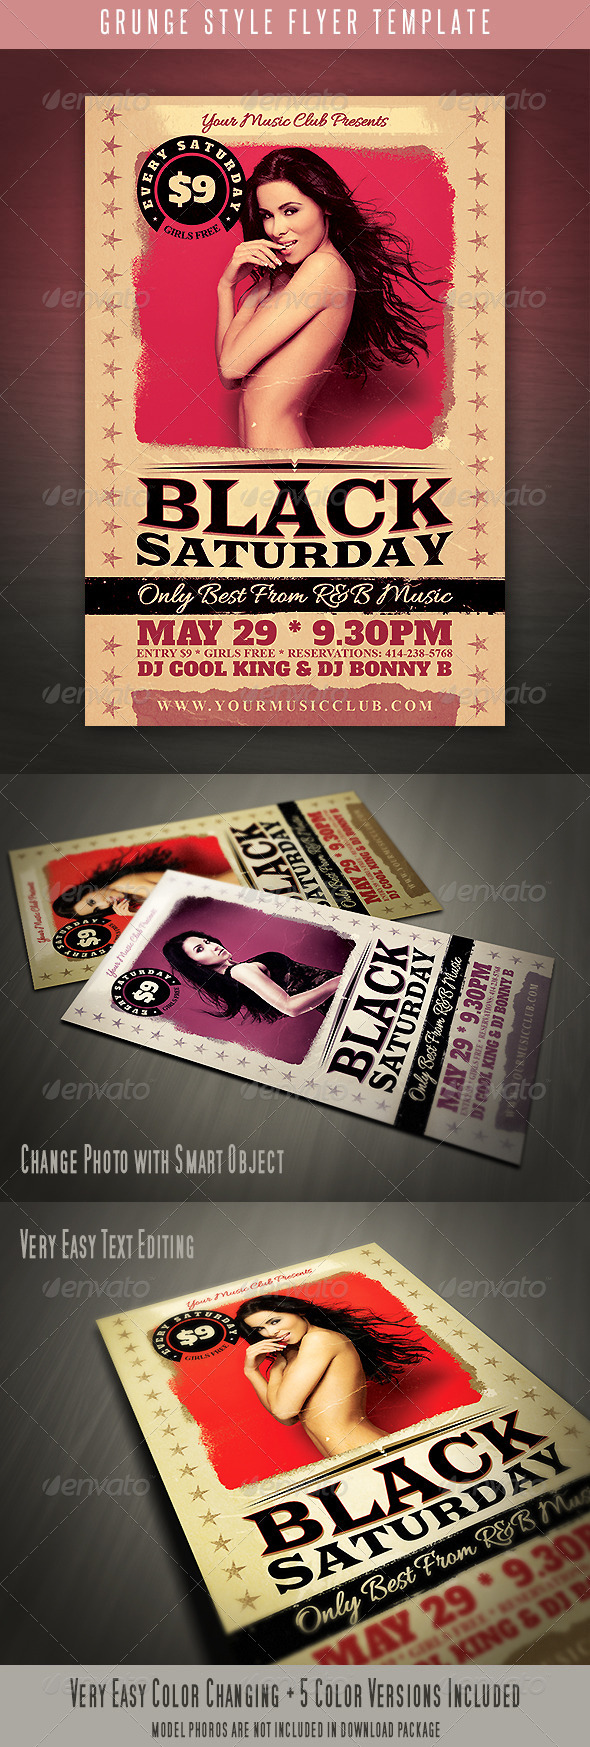 GraphicRiver Grunge Style Flyer 4577707